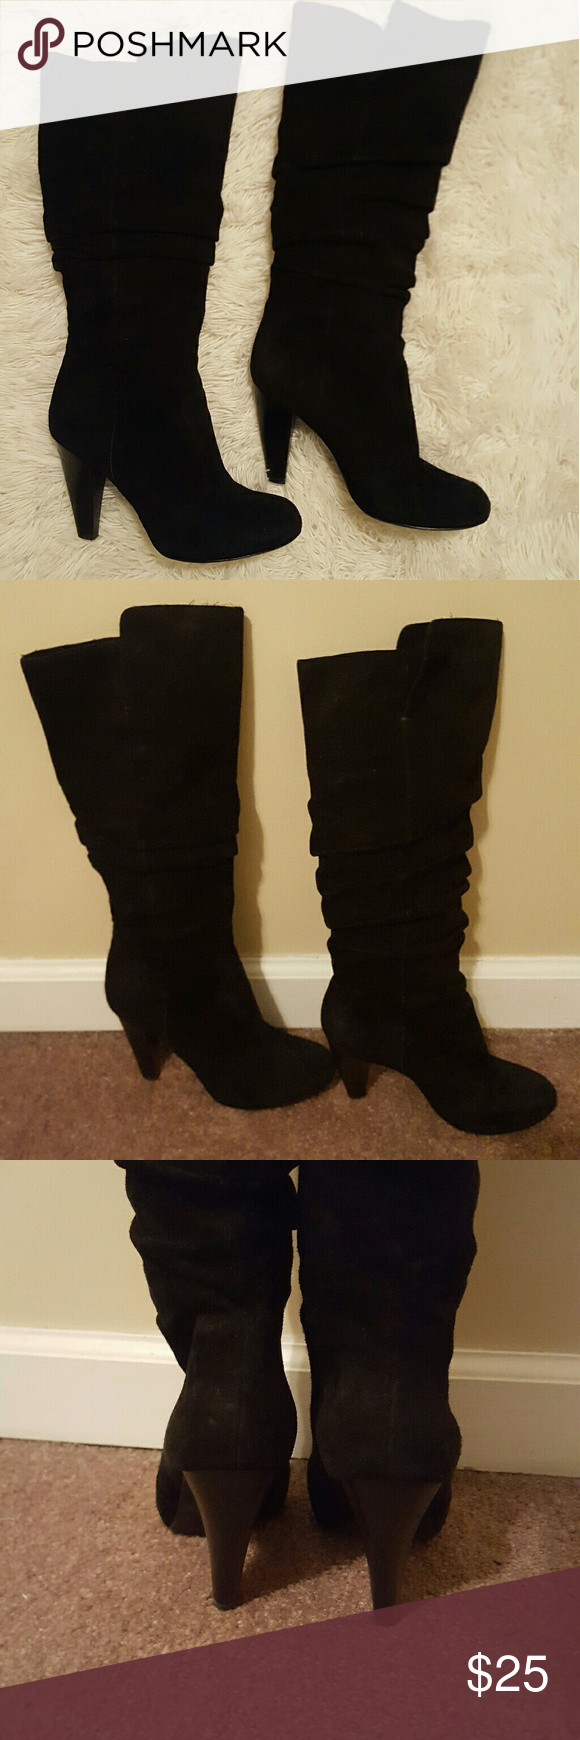 MIA SPIGA Genuine Suede Leather Knee High Boots Mia Spiga real leather knee high boots in great condition and so comfortable! Size 6 MIA Shoes Heeled Boots